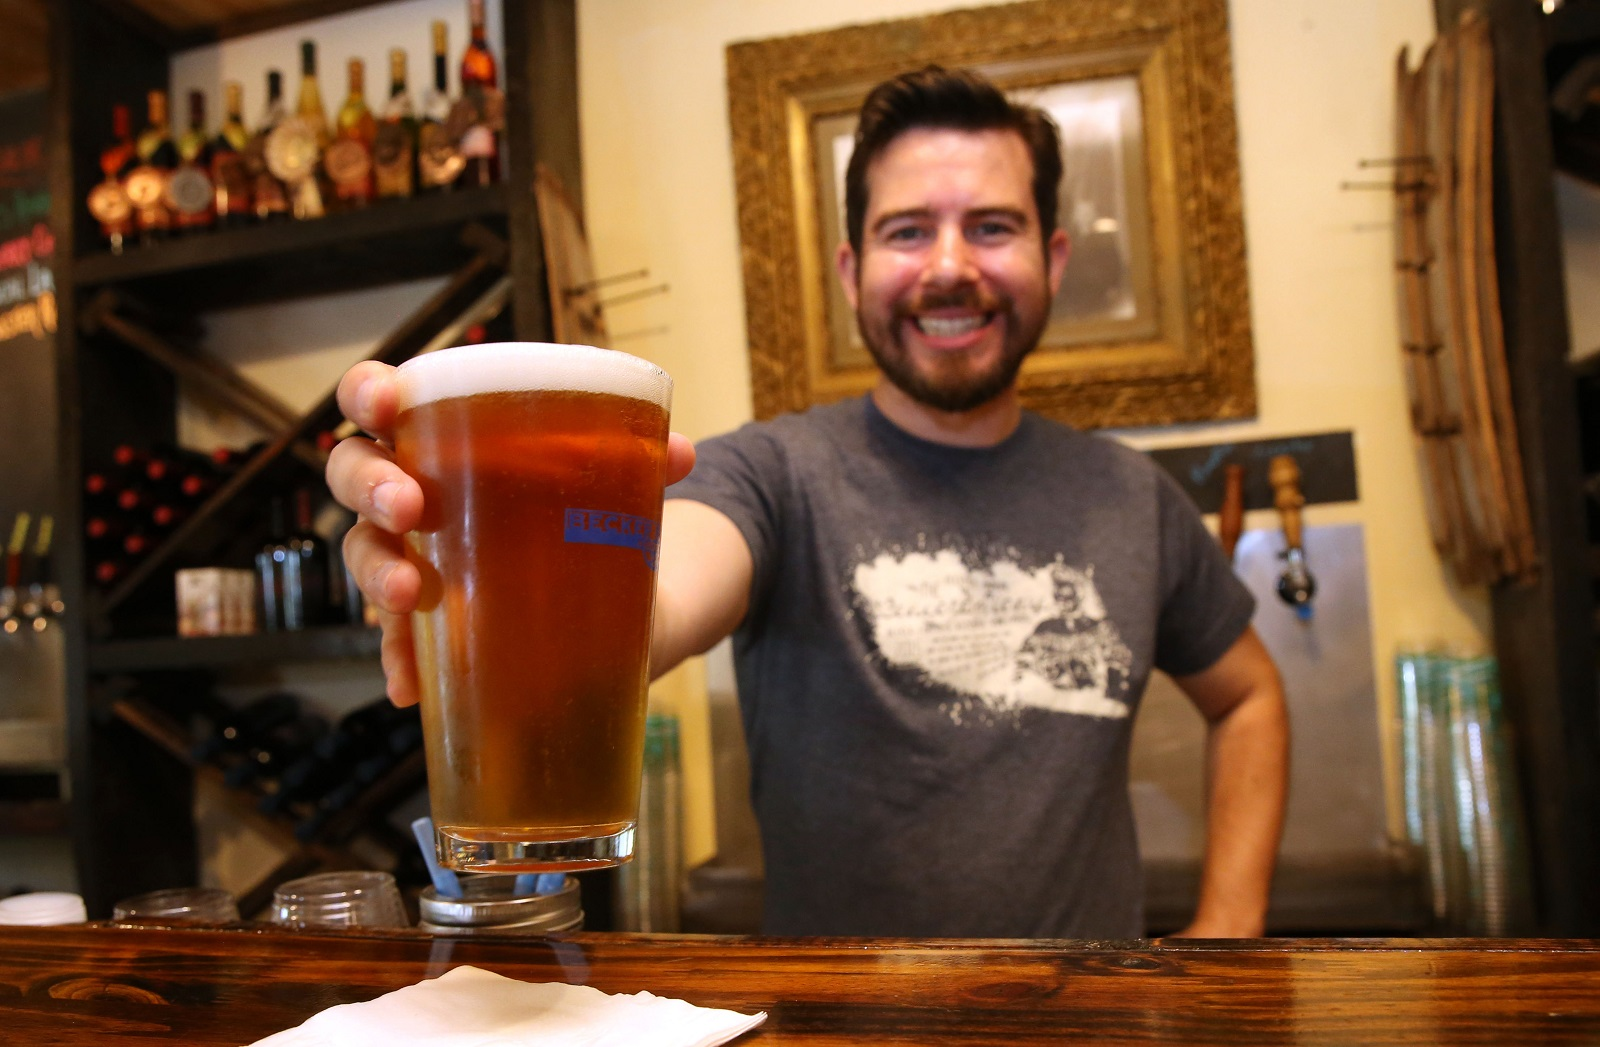 Winemaker Andres Vizcarra fills in as bartender at Becker Brewing and serves up the Local Lager, one of their favorite brews. (Sharon Cantillon/Buffalo News)